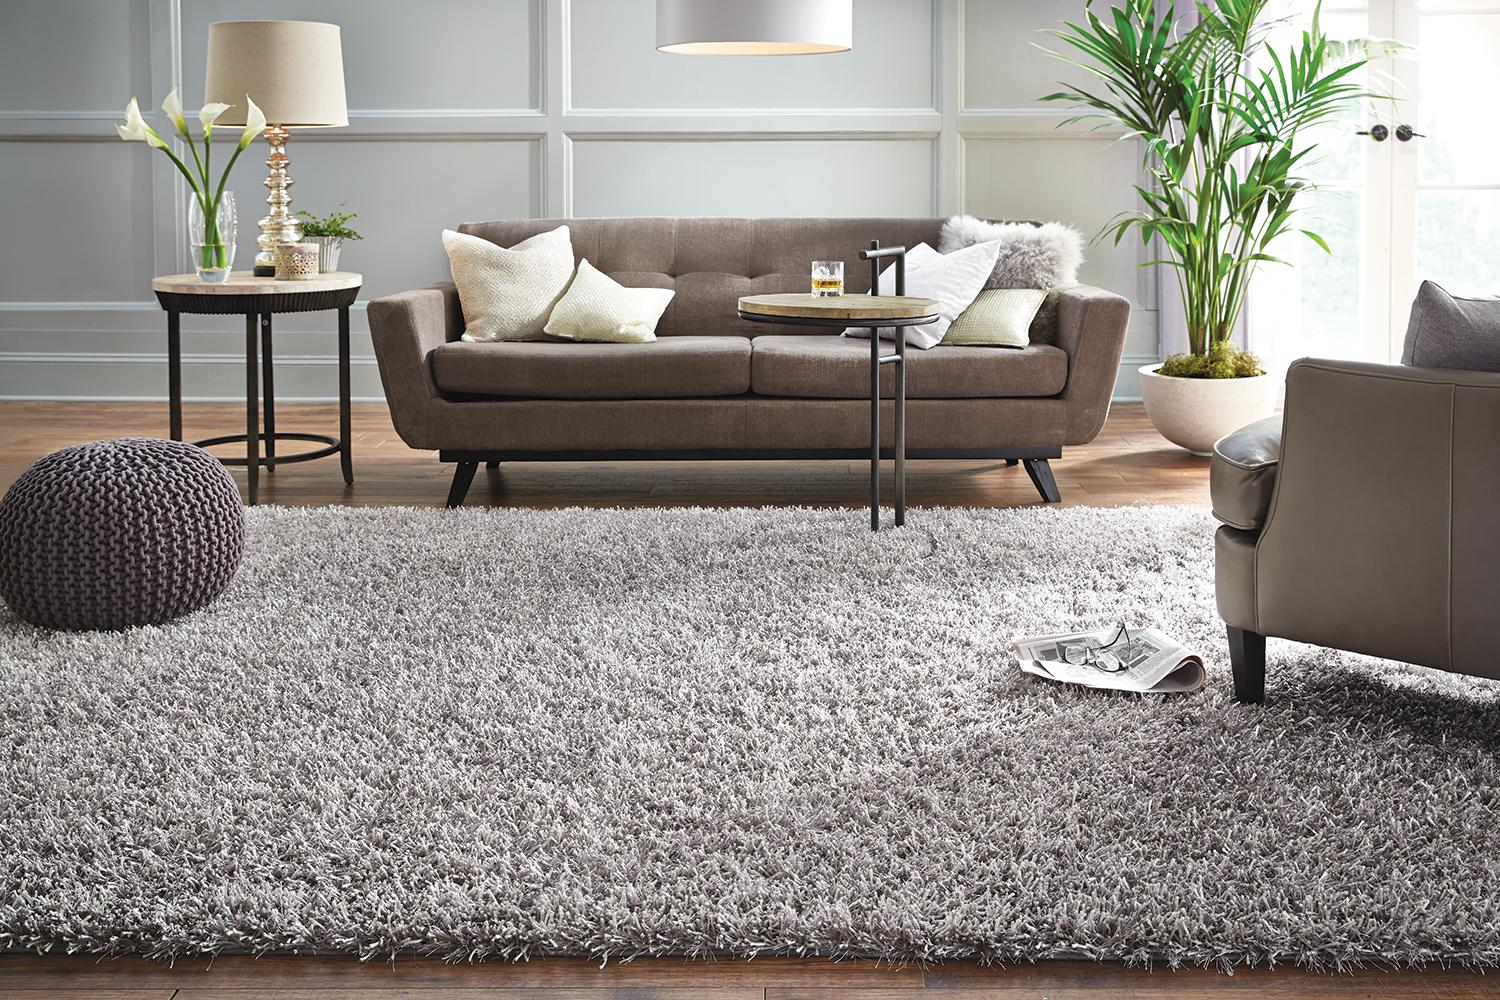 The Modern Area Rug Derives Its Inspiration From This Ancient Ancestry It Also Has Ability To Transform Virtually Any Room Into An Oasis Of Sheer